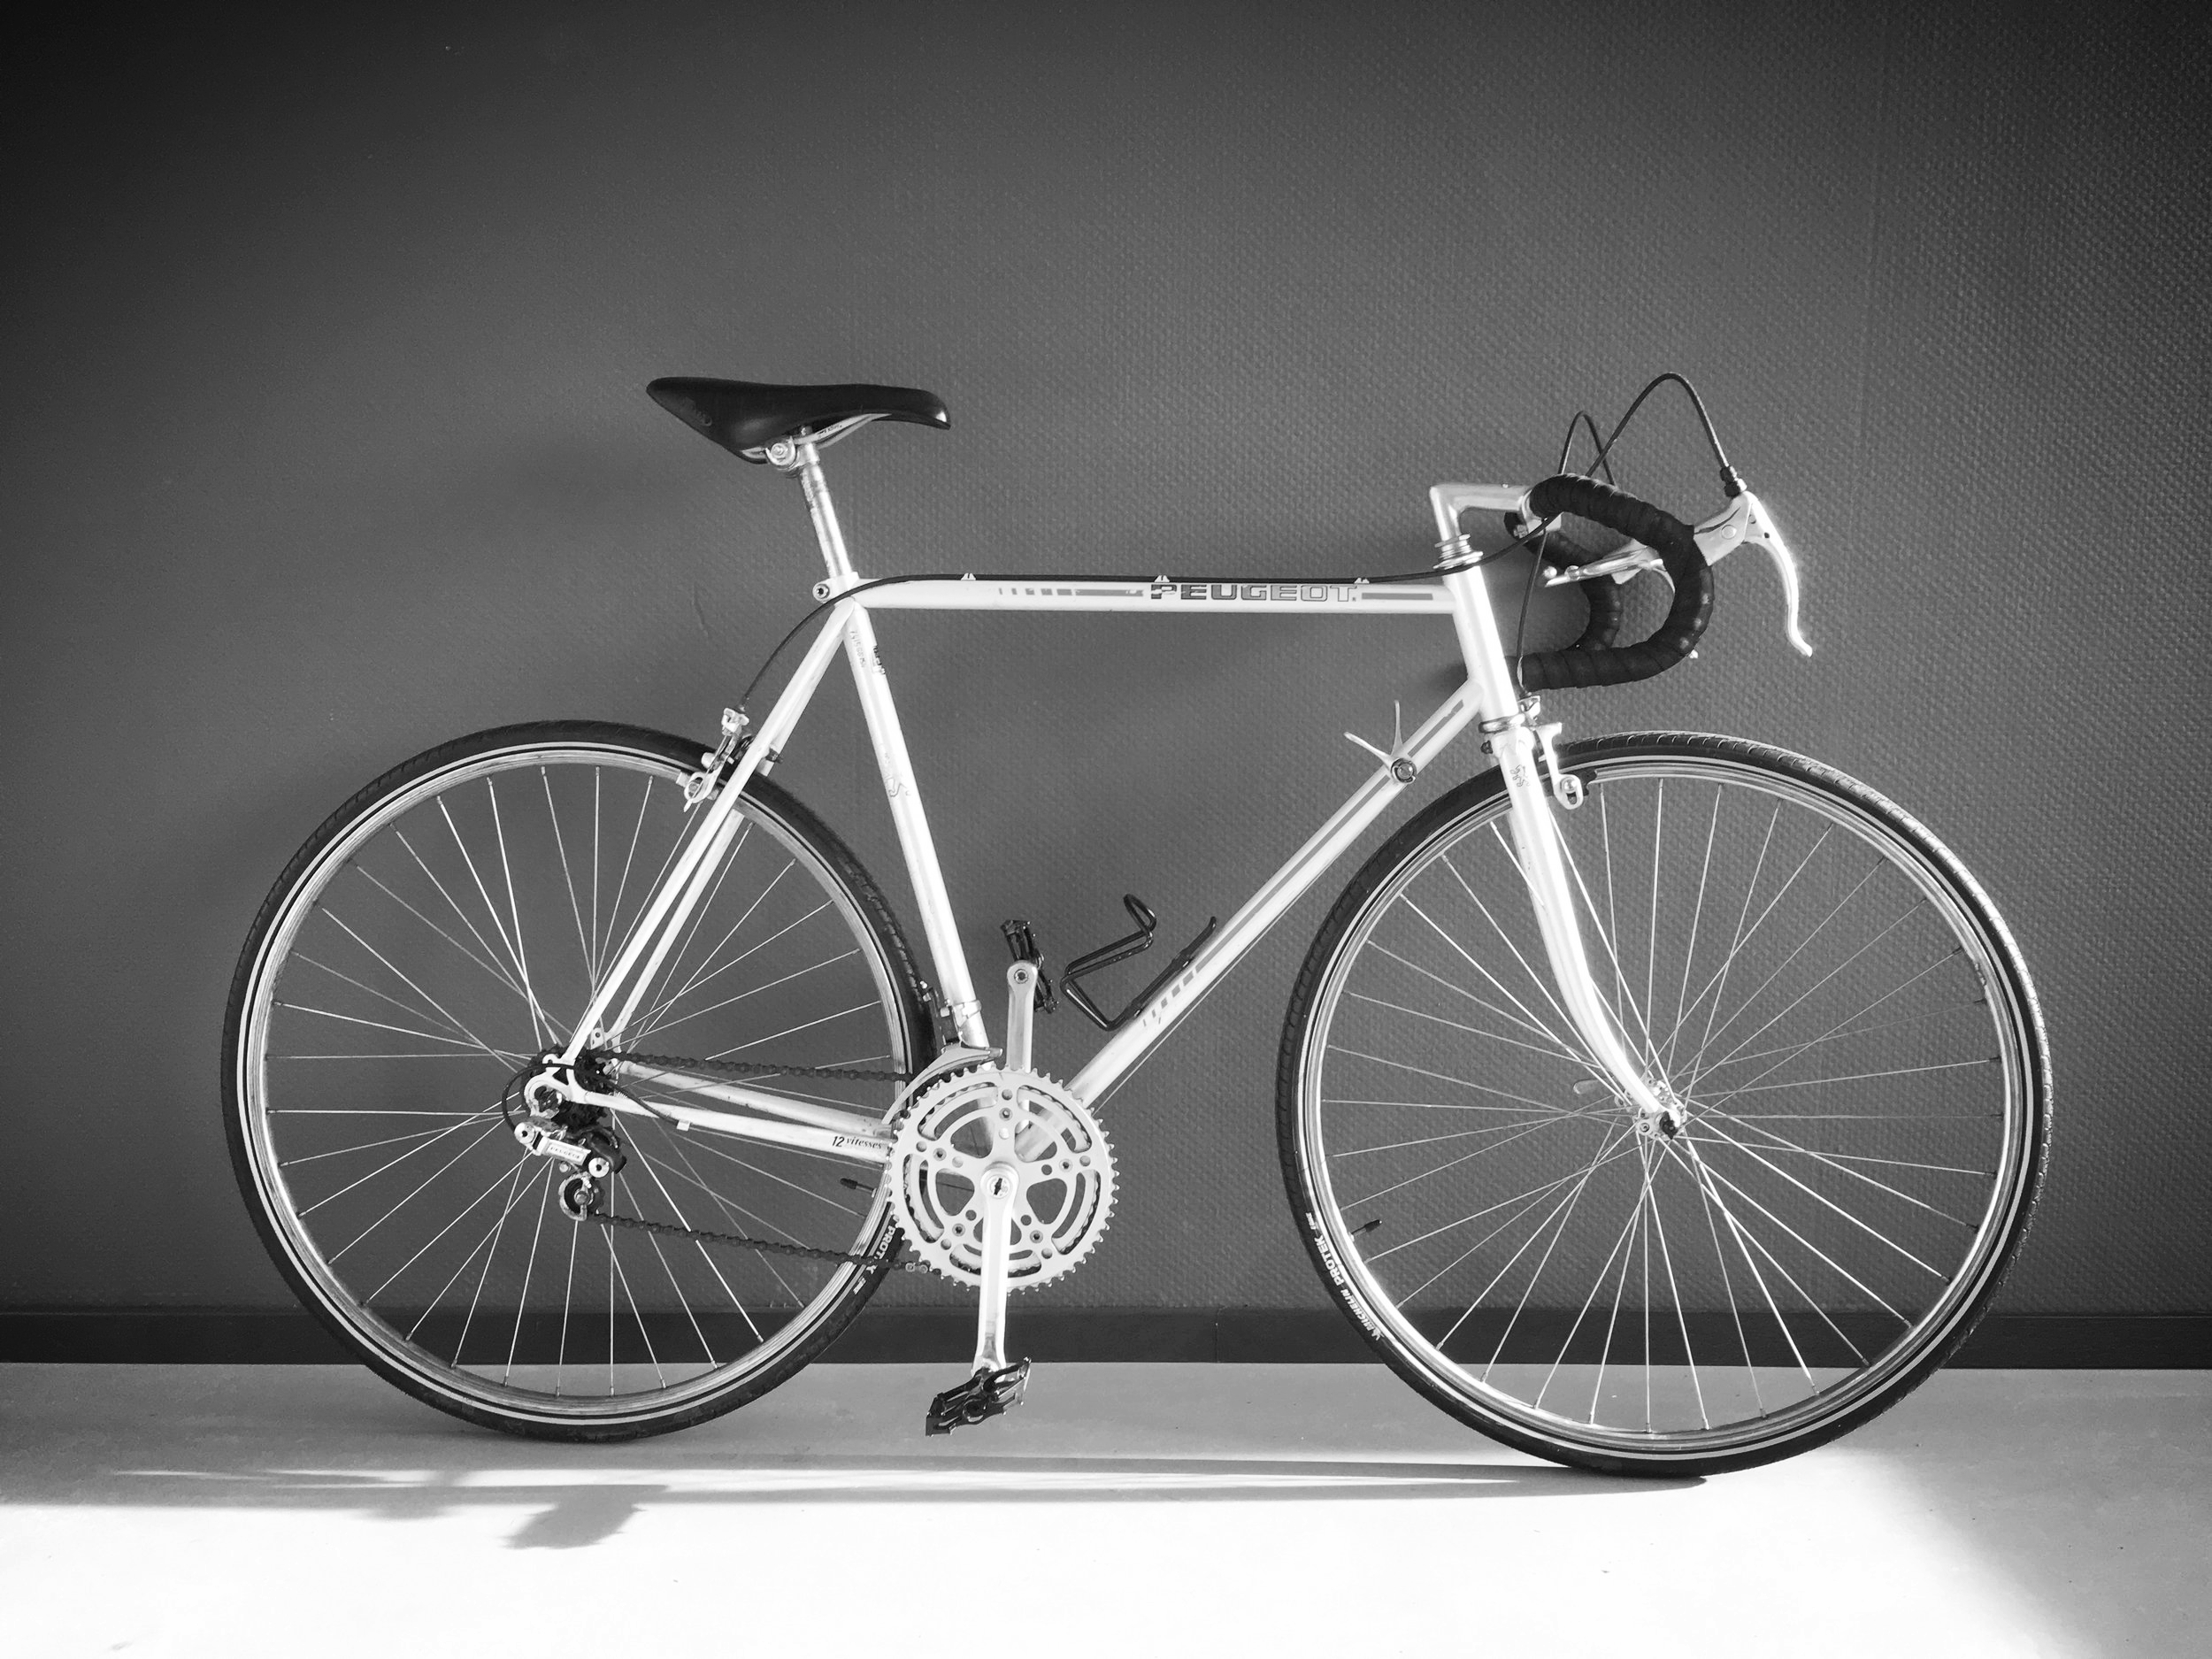 peugeot racer - GreySteelSize 57, [riders > 175cm} 6 speed, New Michelin Protek tires.Ready for winter.sold